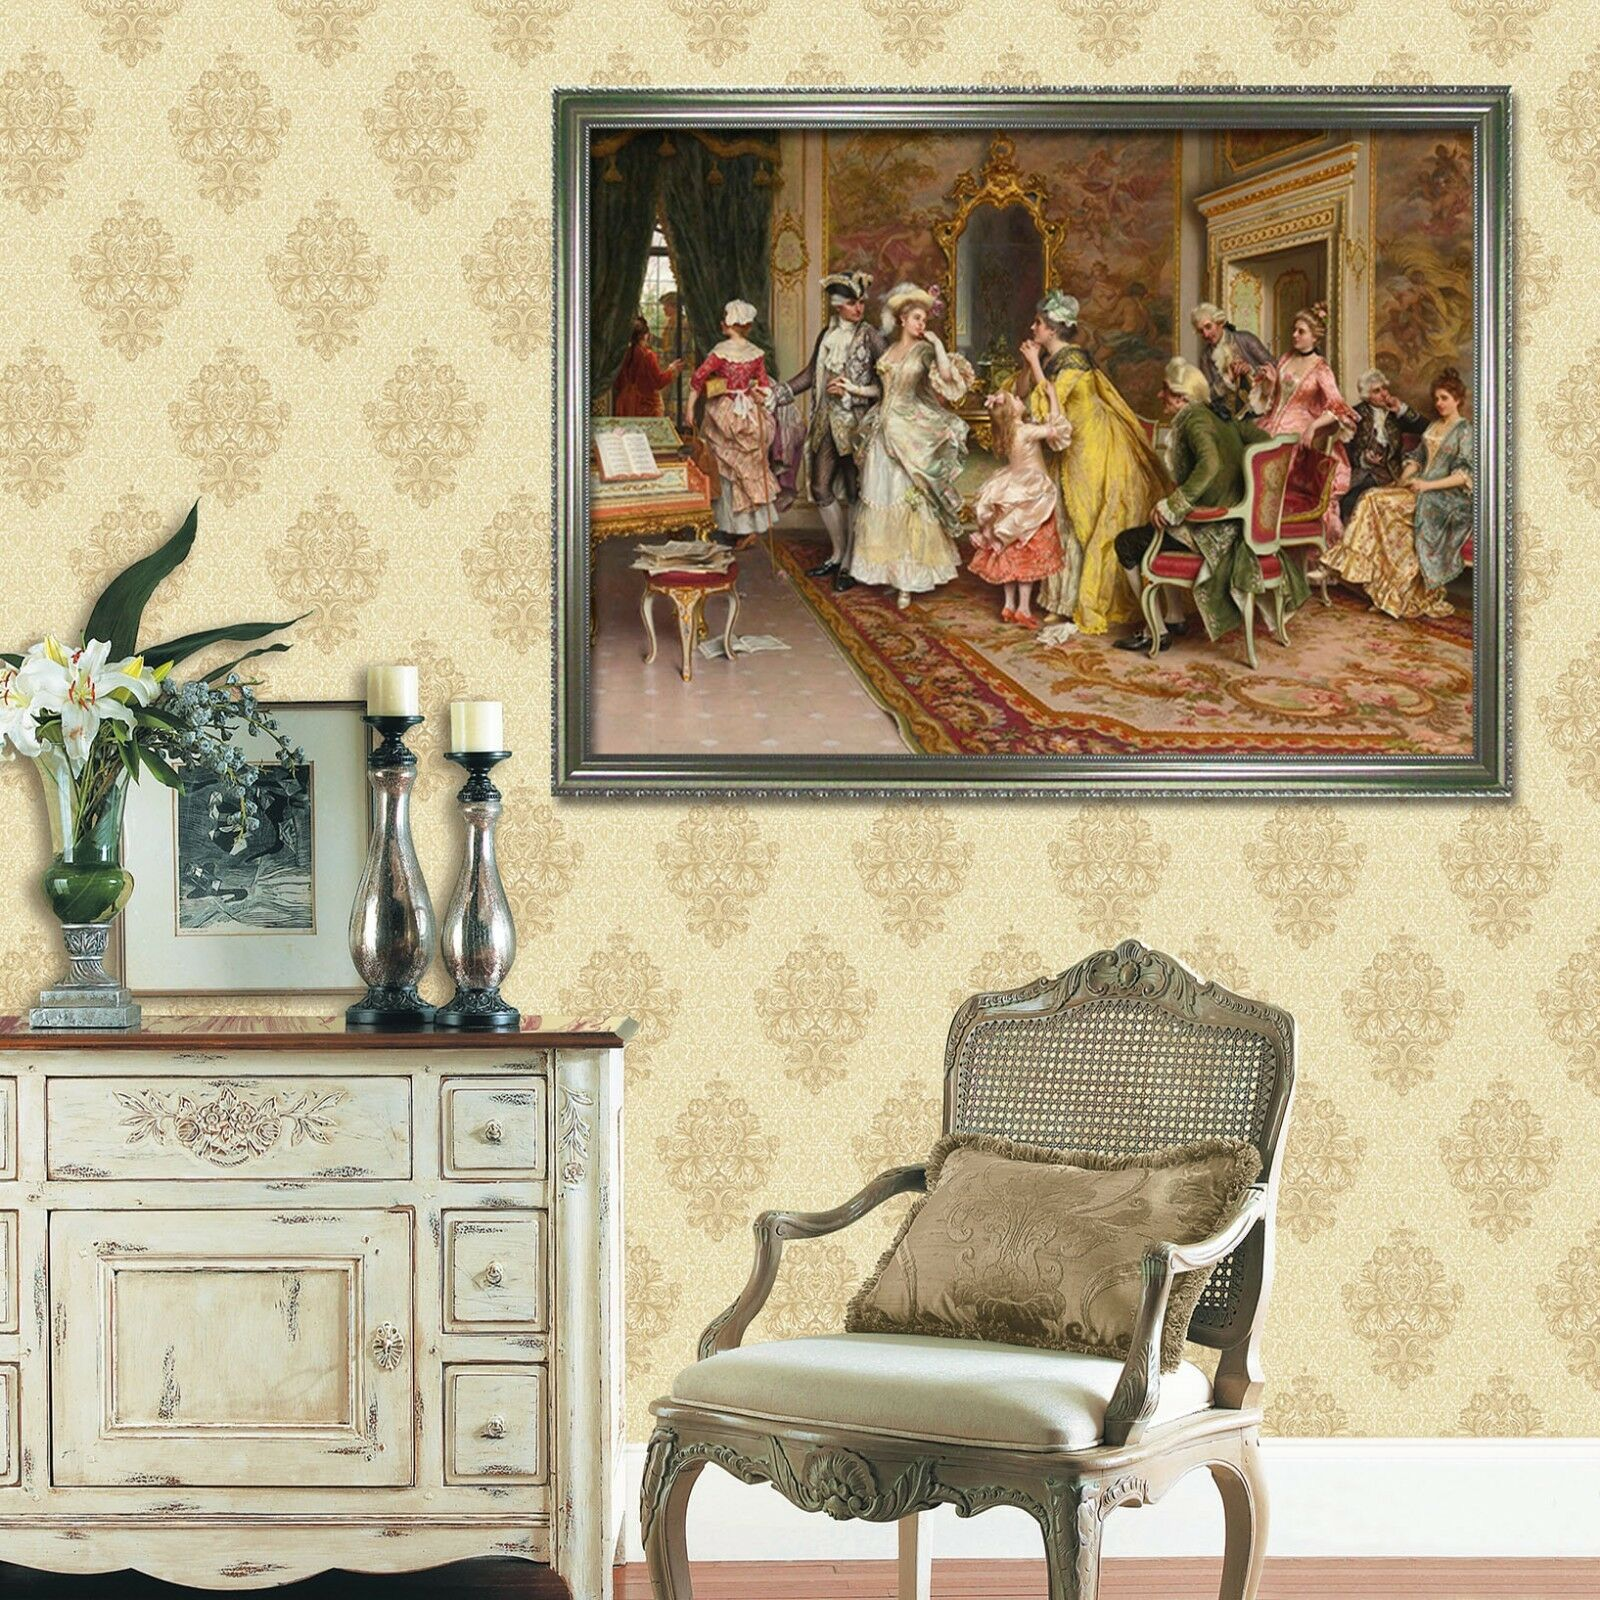 3D European Dance Hall 1 Framed Poster Home Decor Print Painting Art WALLPAPER